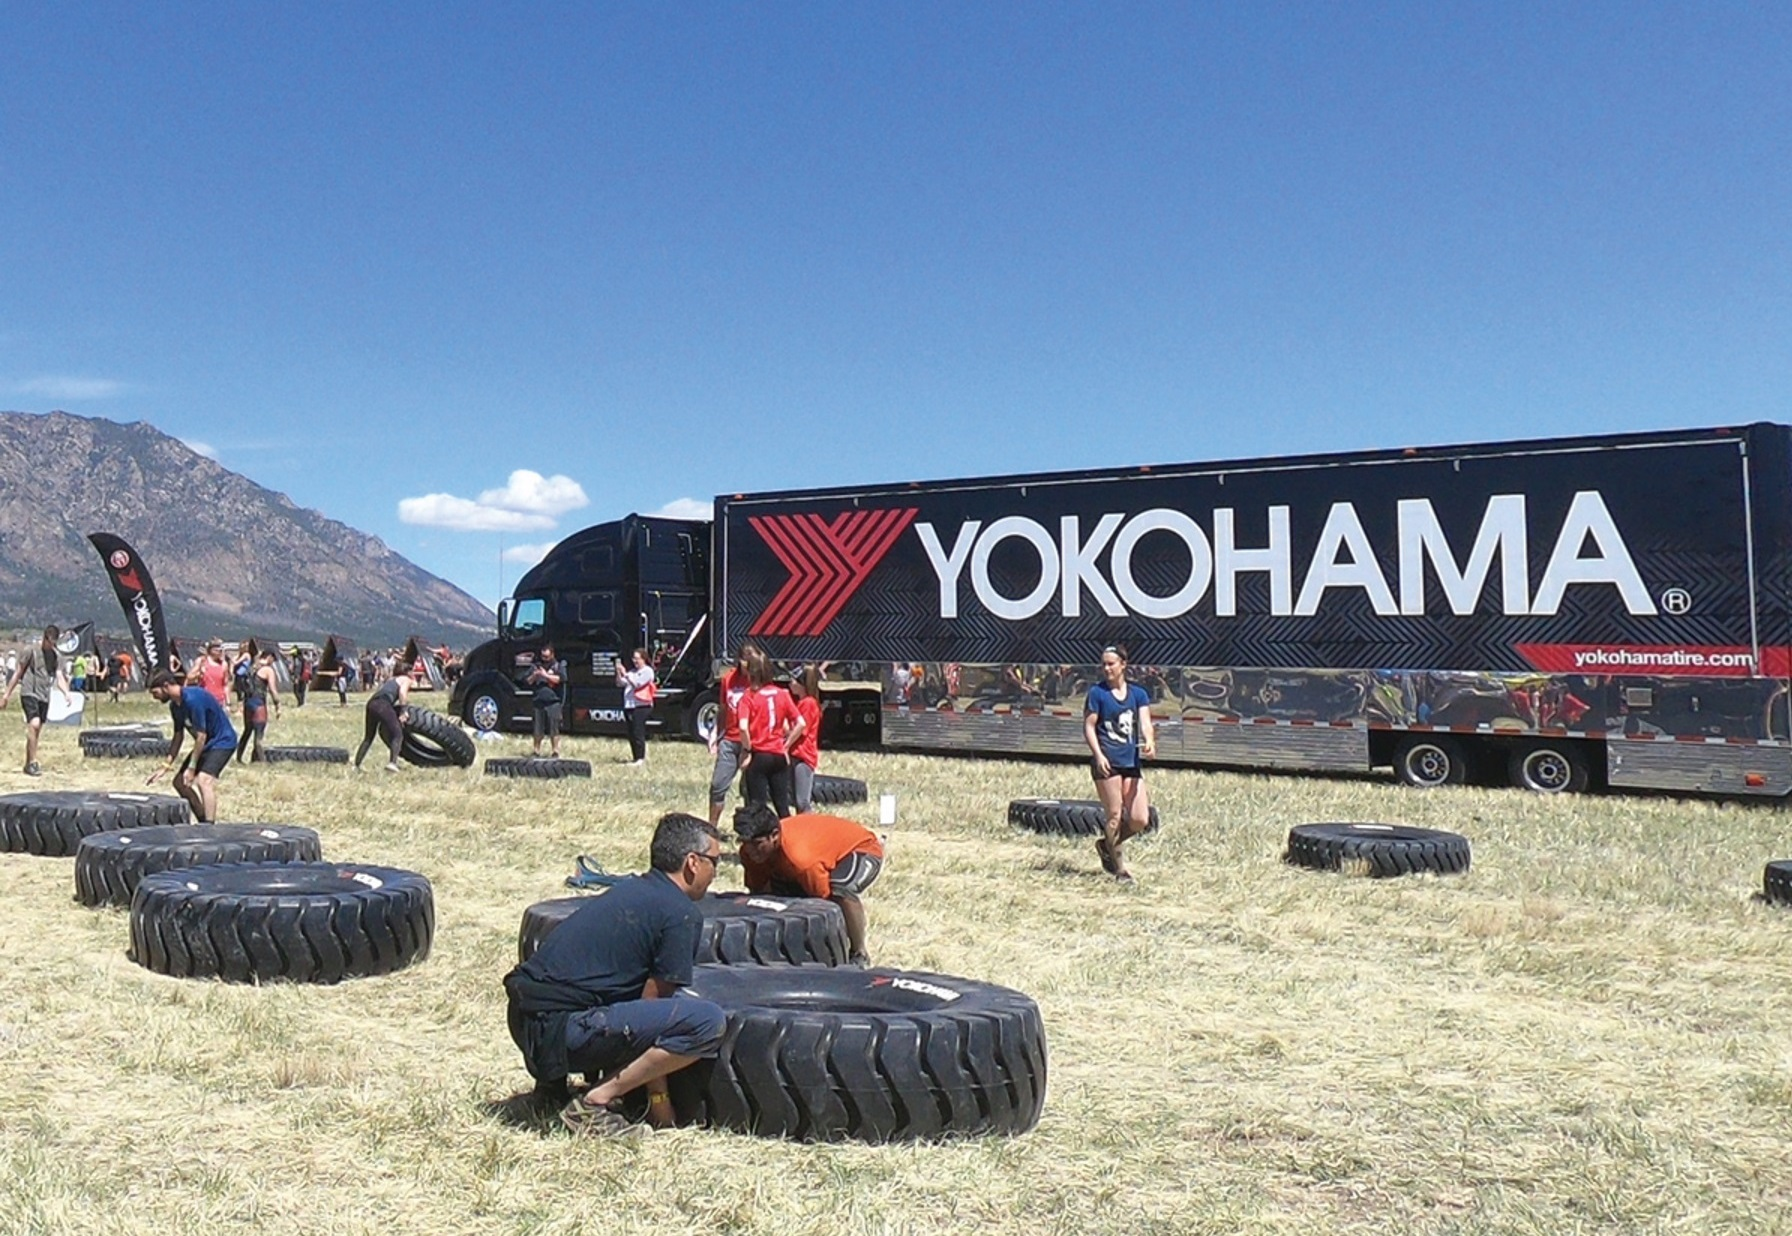 Yokohama Partners with Spartan to Power New Tire Promotion